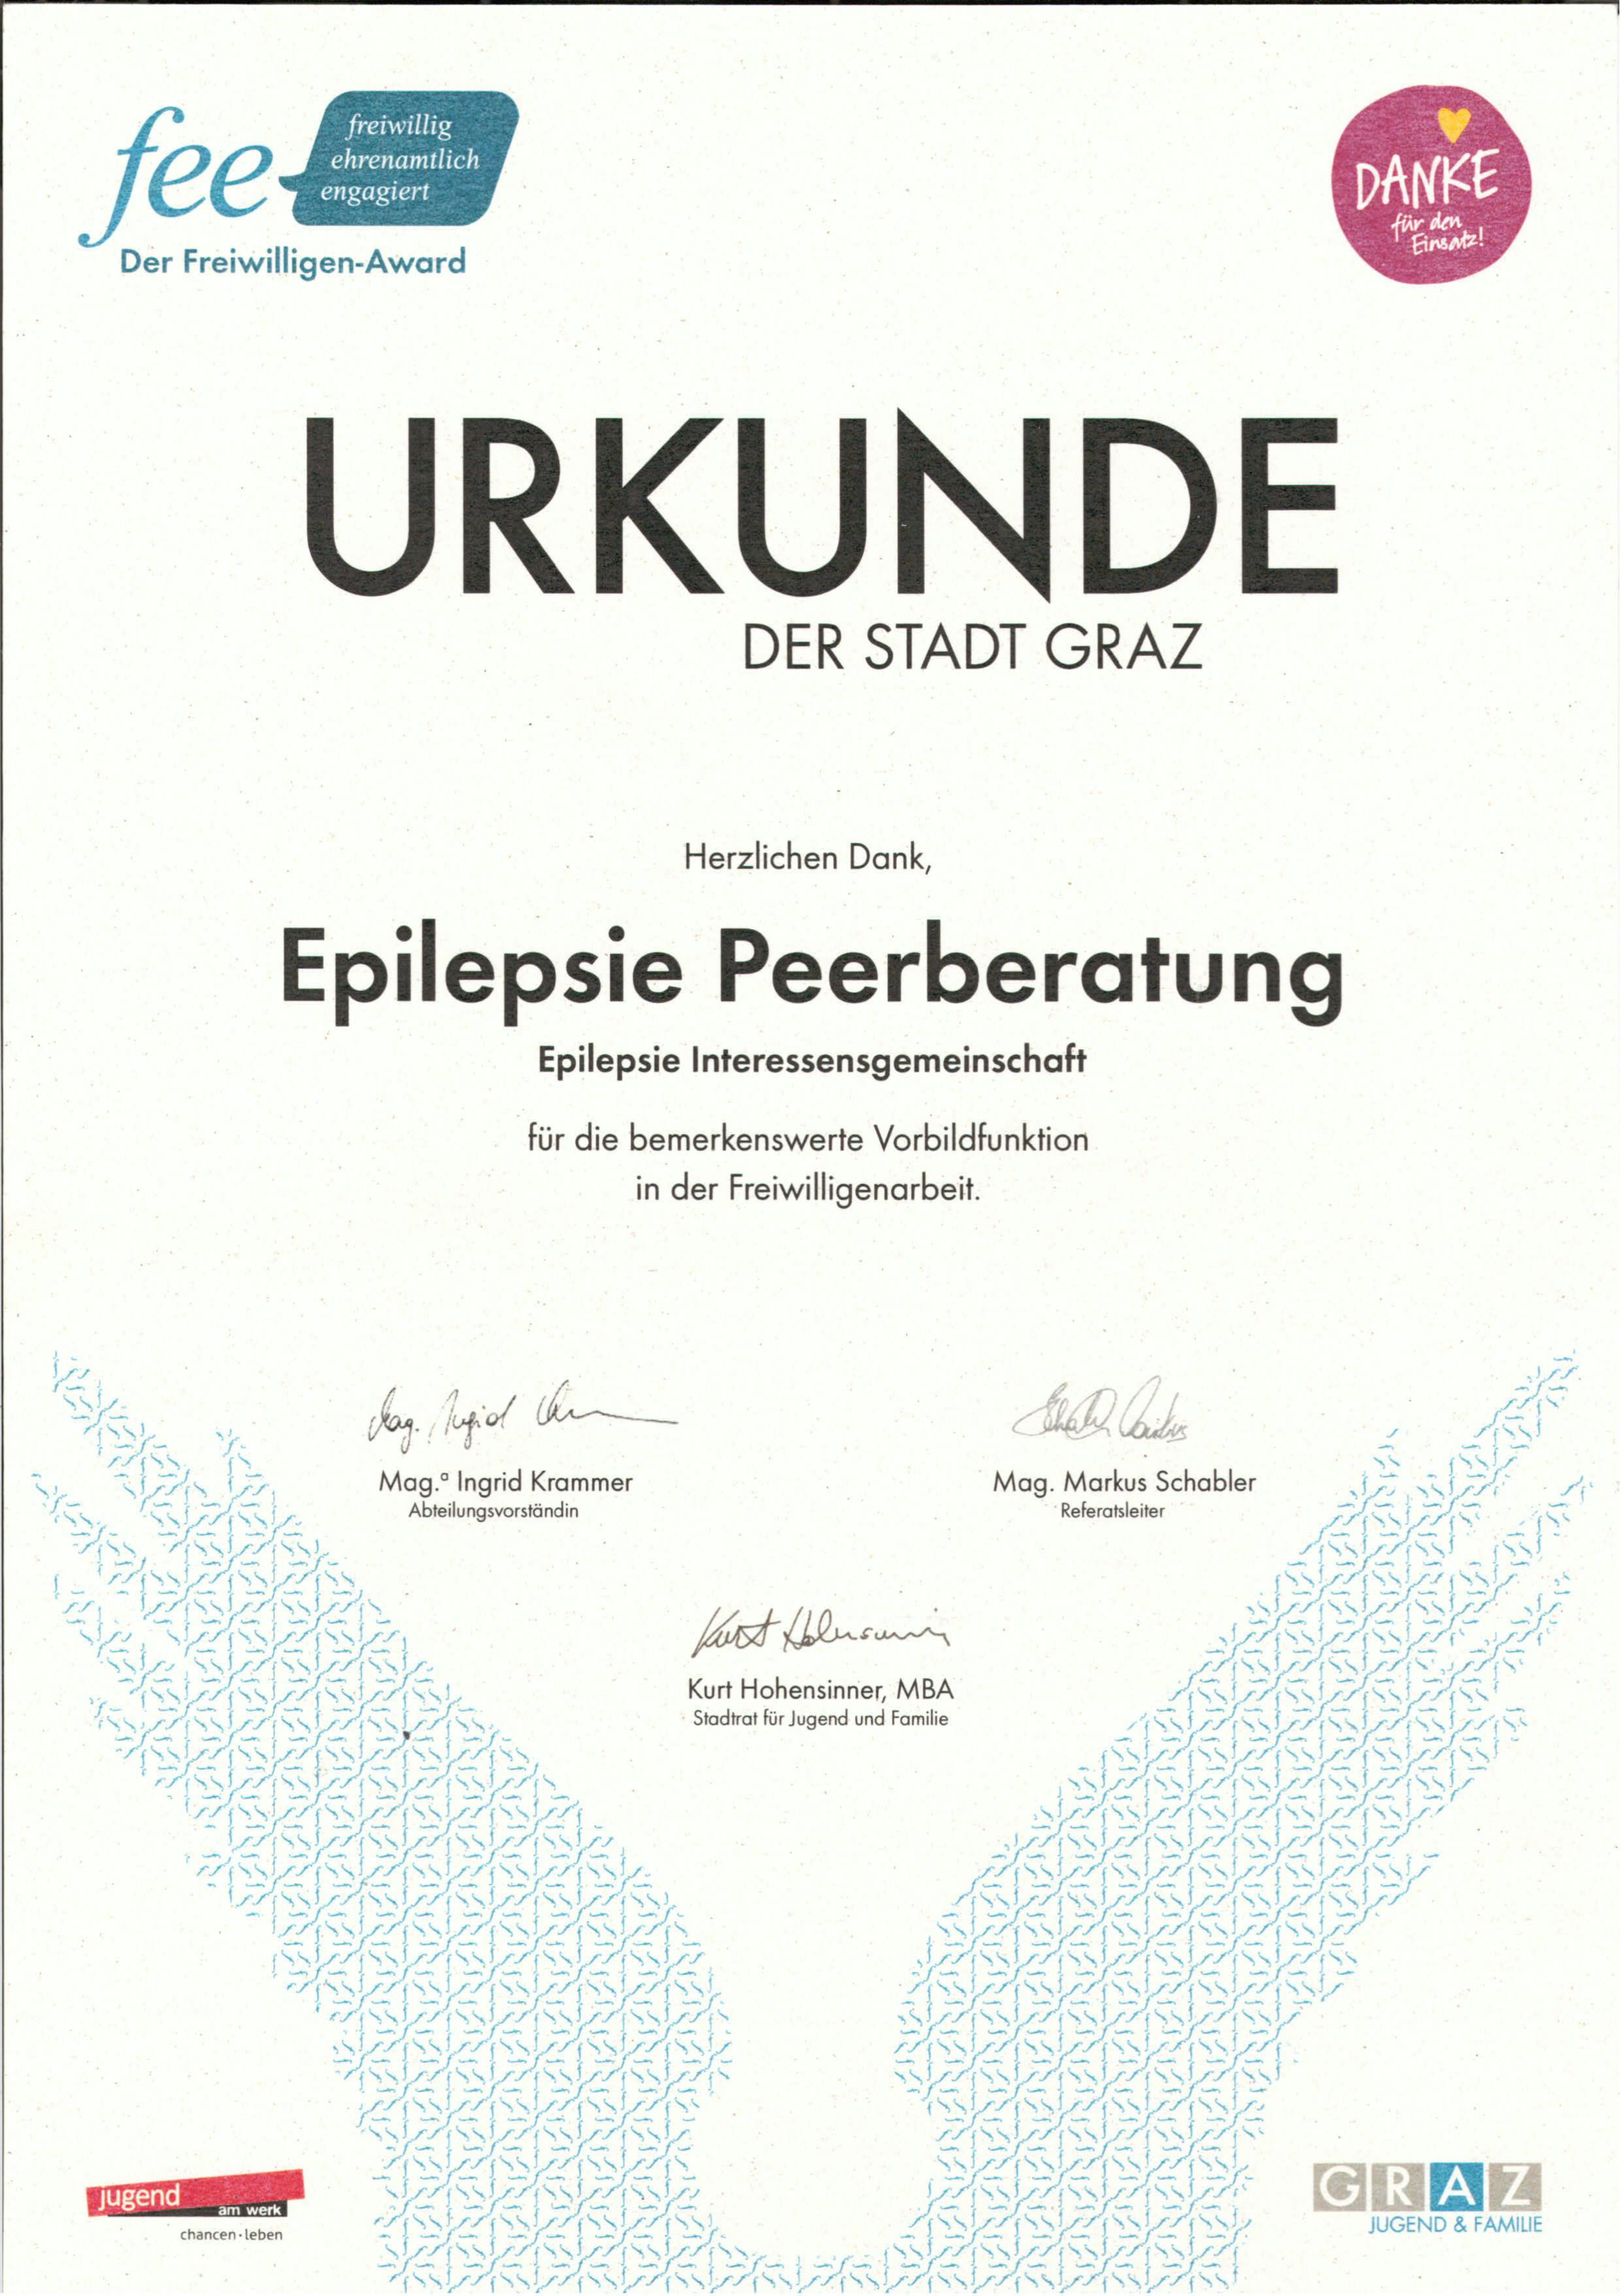 Urkunde fee Award